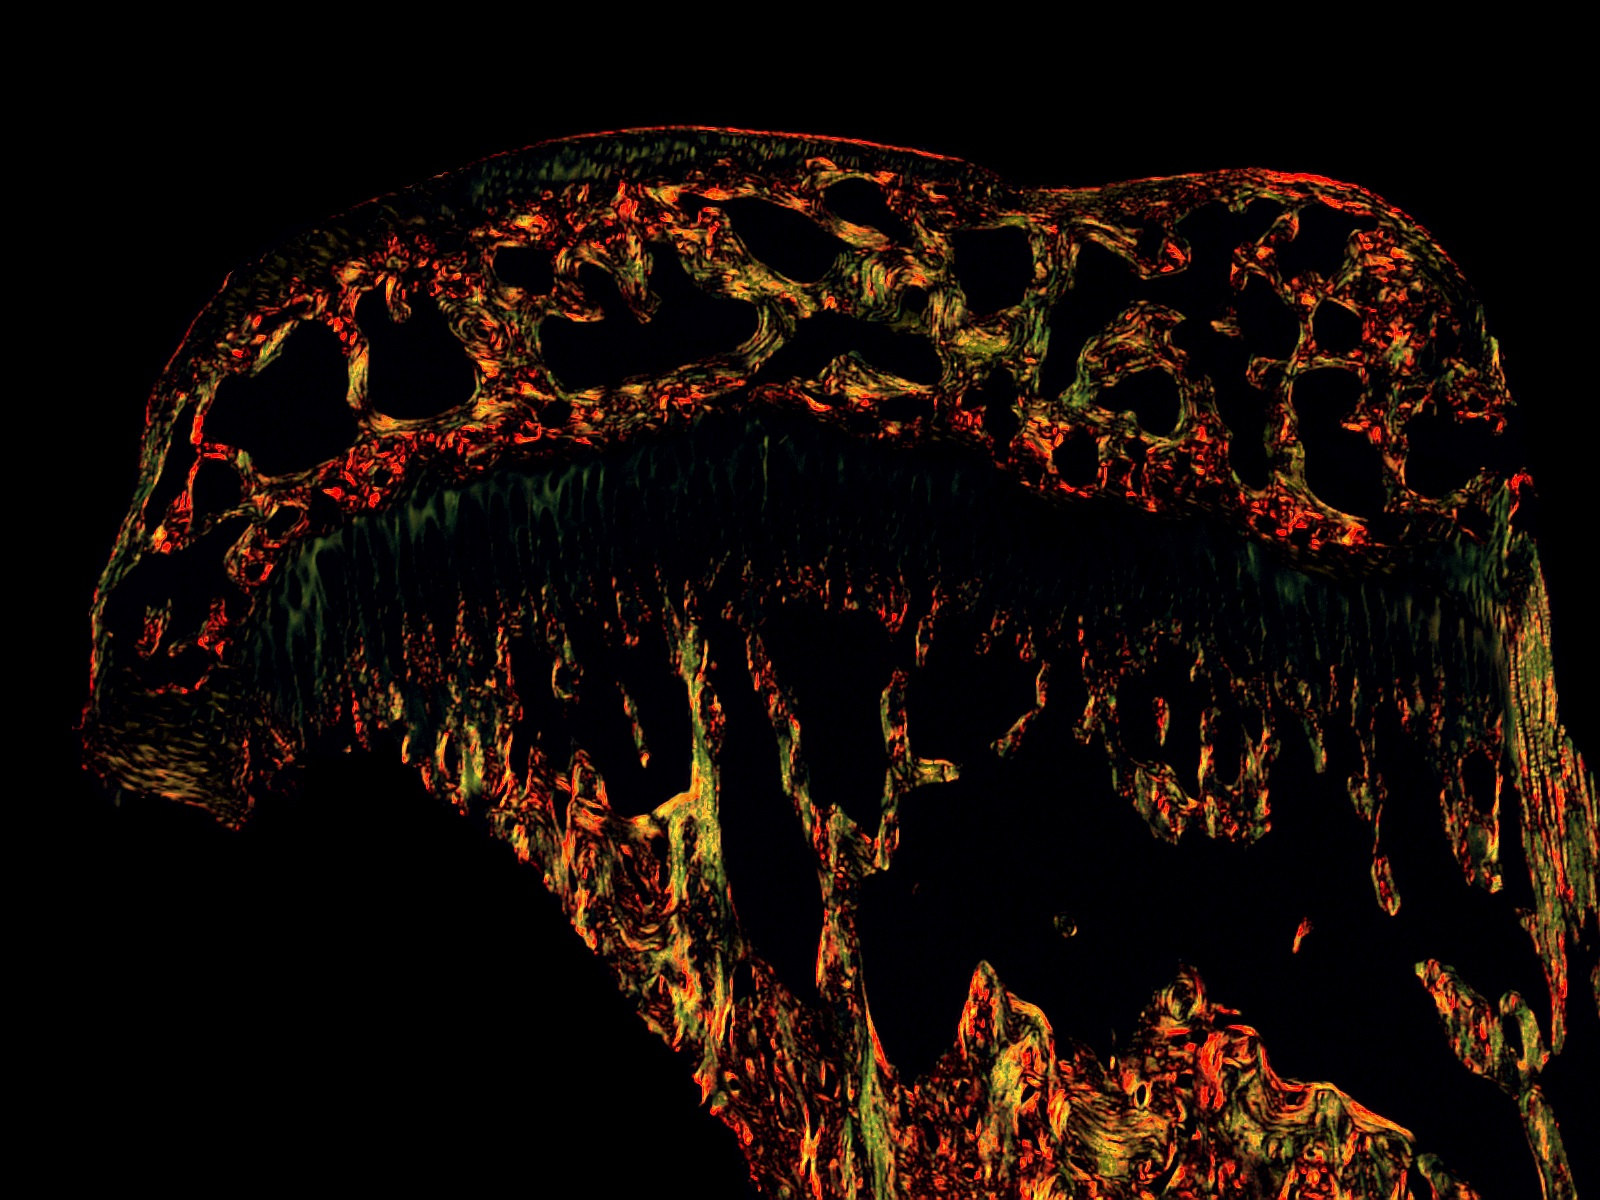 POLARIZED LIGHT IMAGE OF PICROSIRIUS RED-STAINED BONE